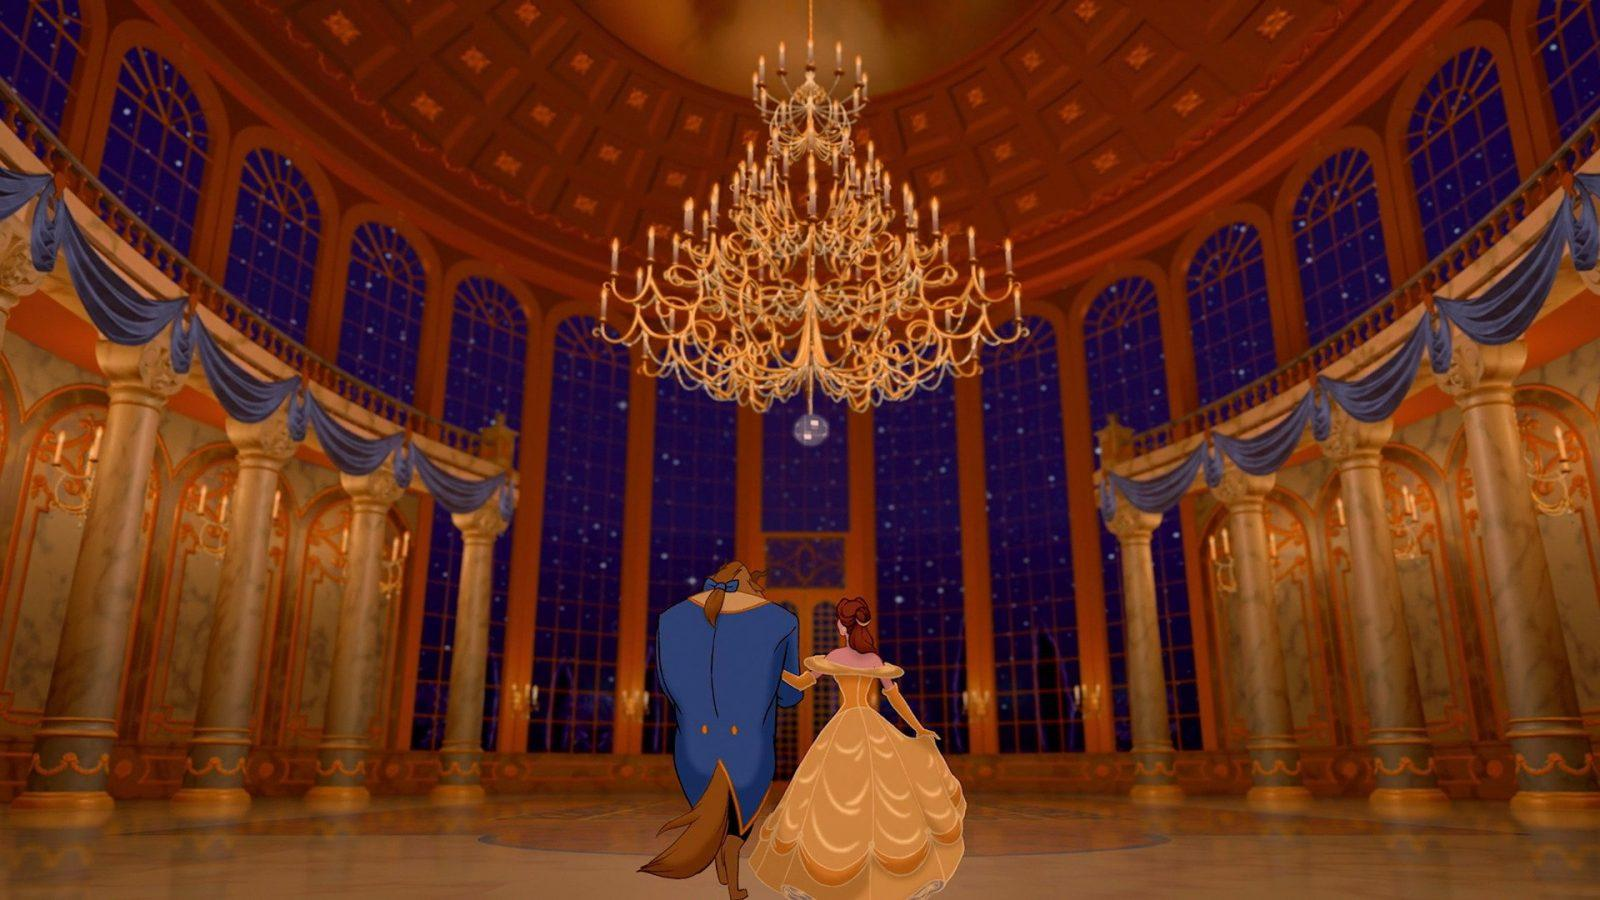 How to Plan an Enchanted Beauty and the Beast-Themed Date in Australia